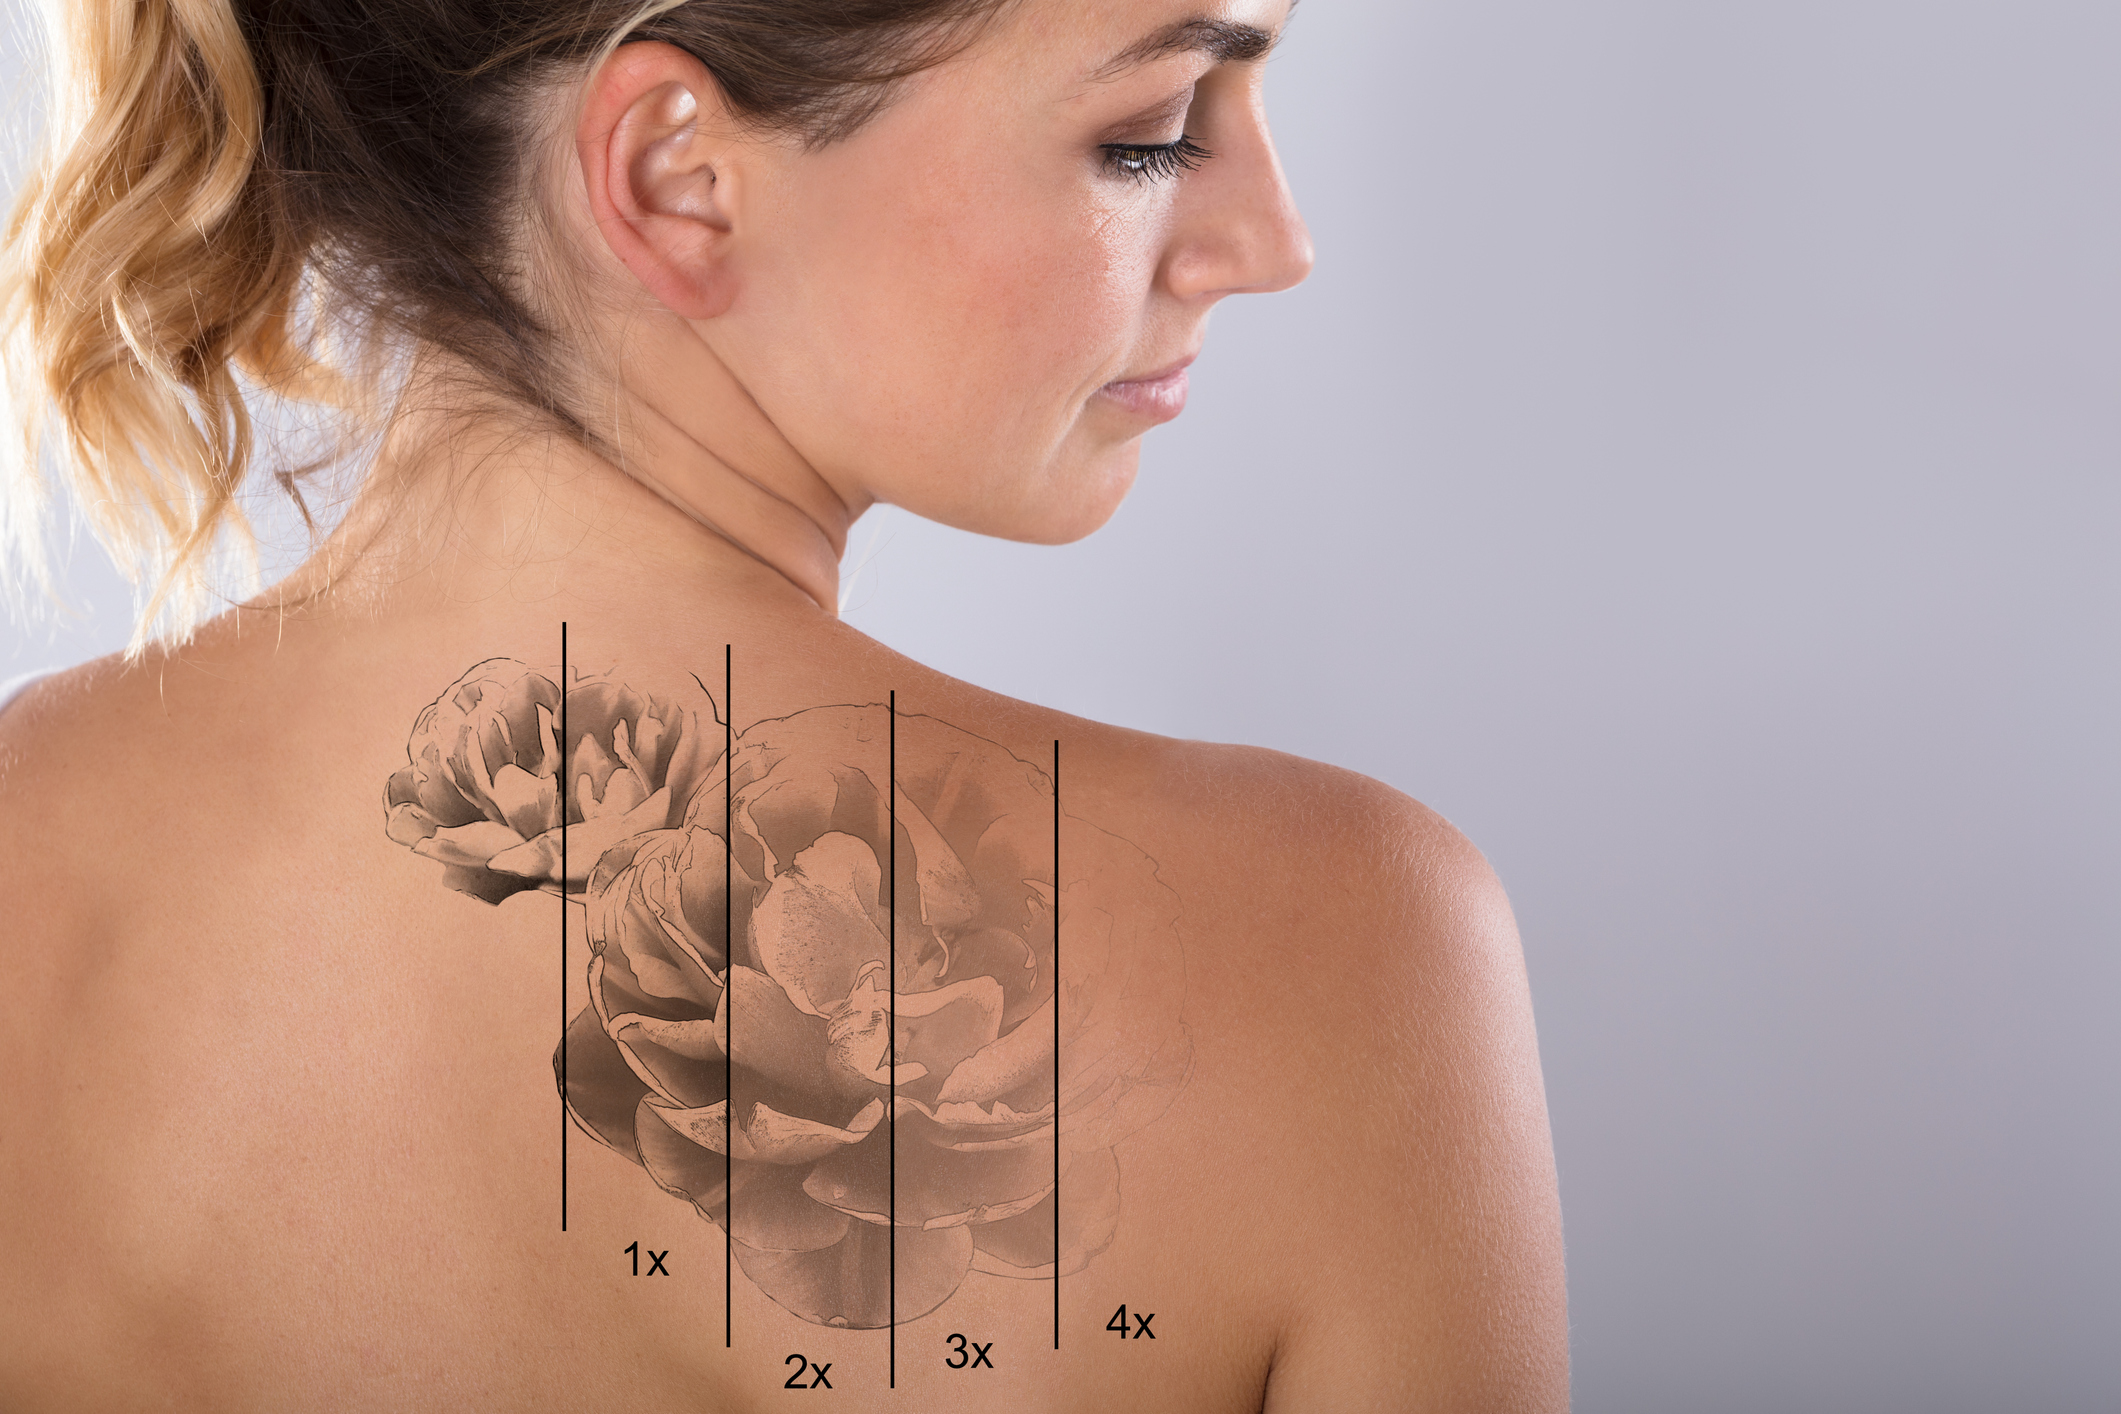 Tattoo Removal in Seattle